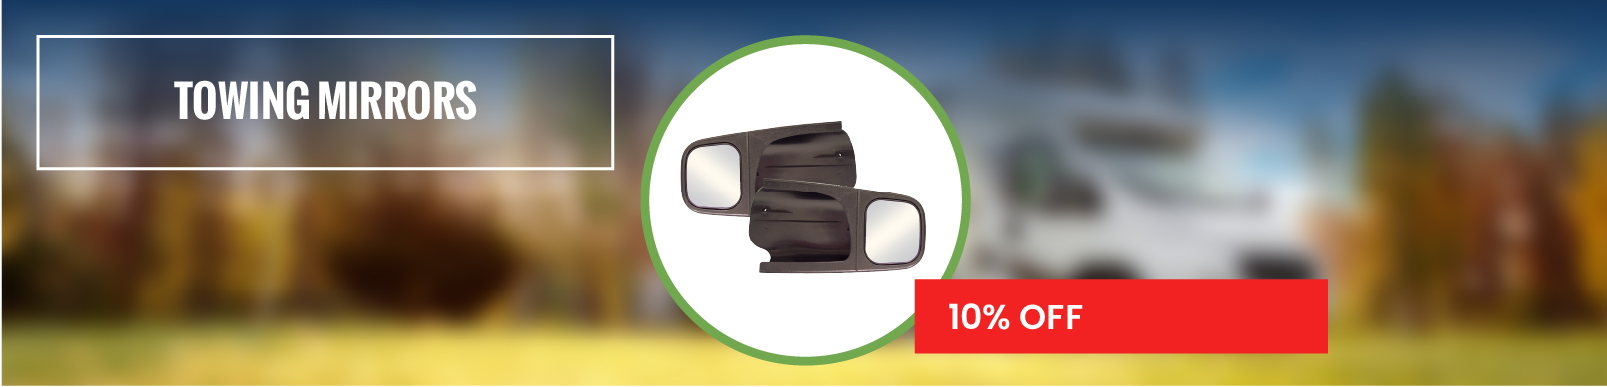 Towing mirrors 10% Off